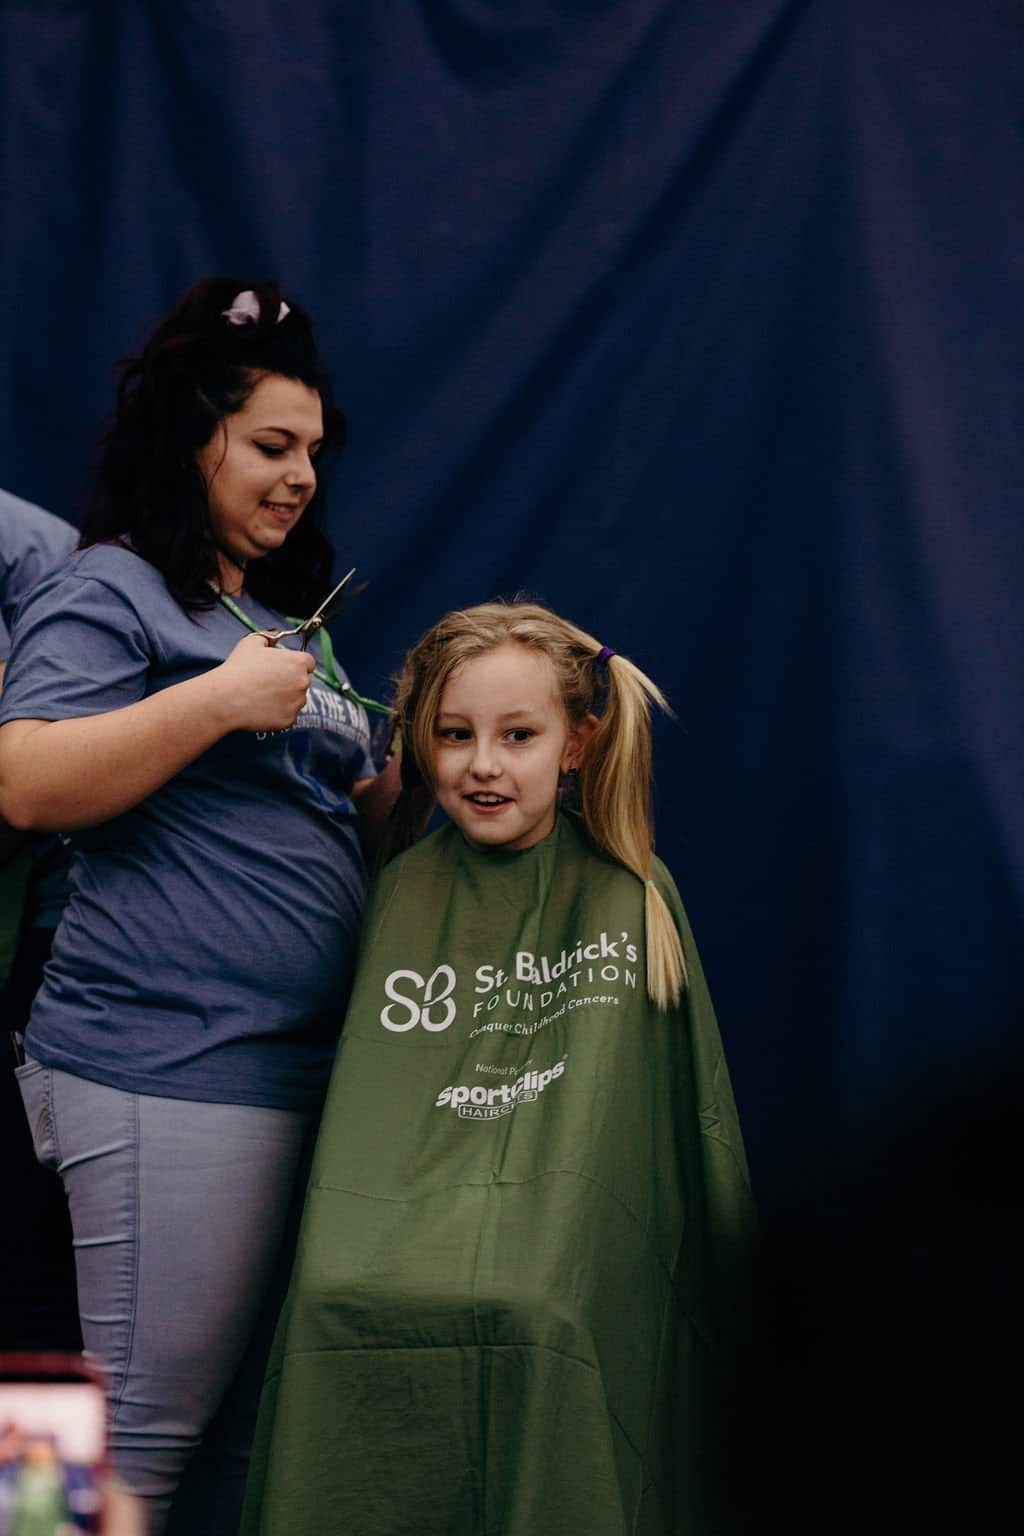 St. Baldricks | I bet you wouldn't shave your head 179